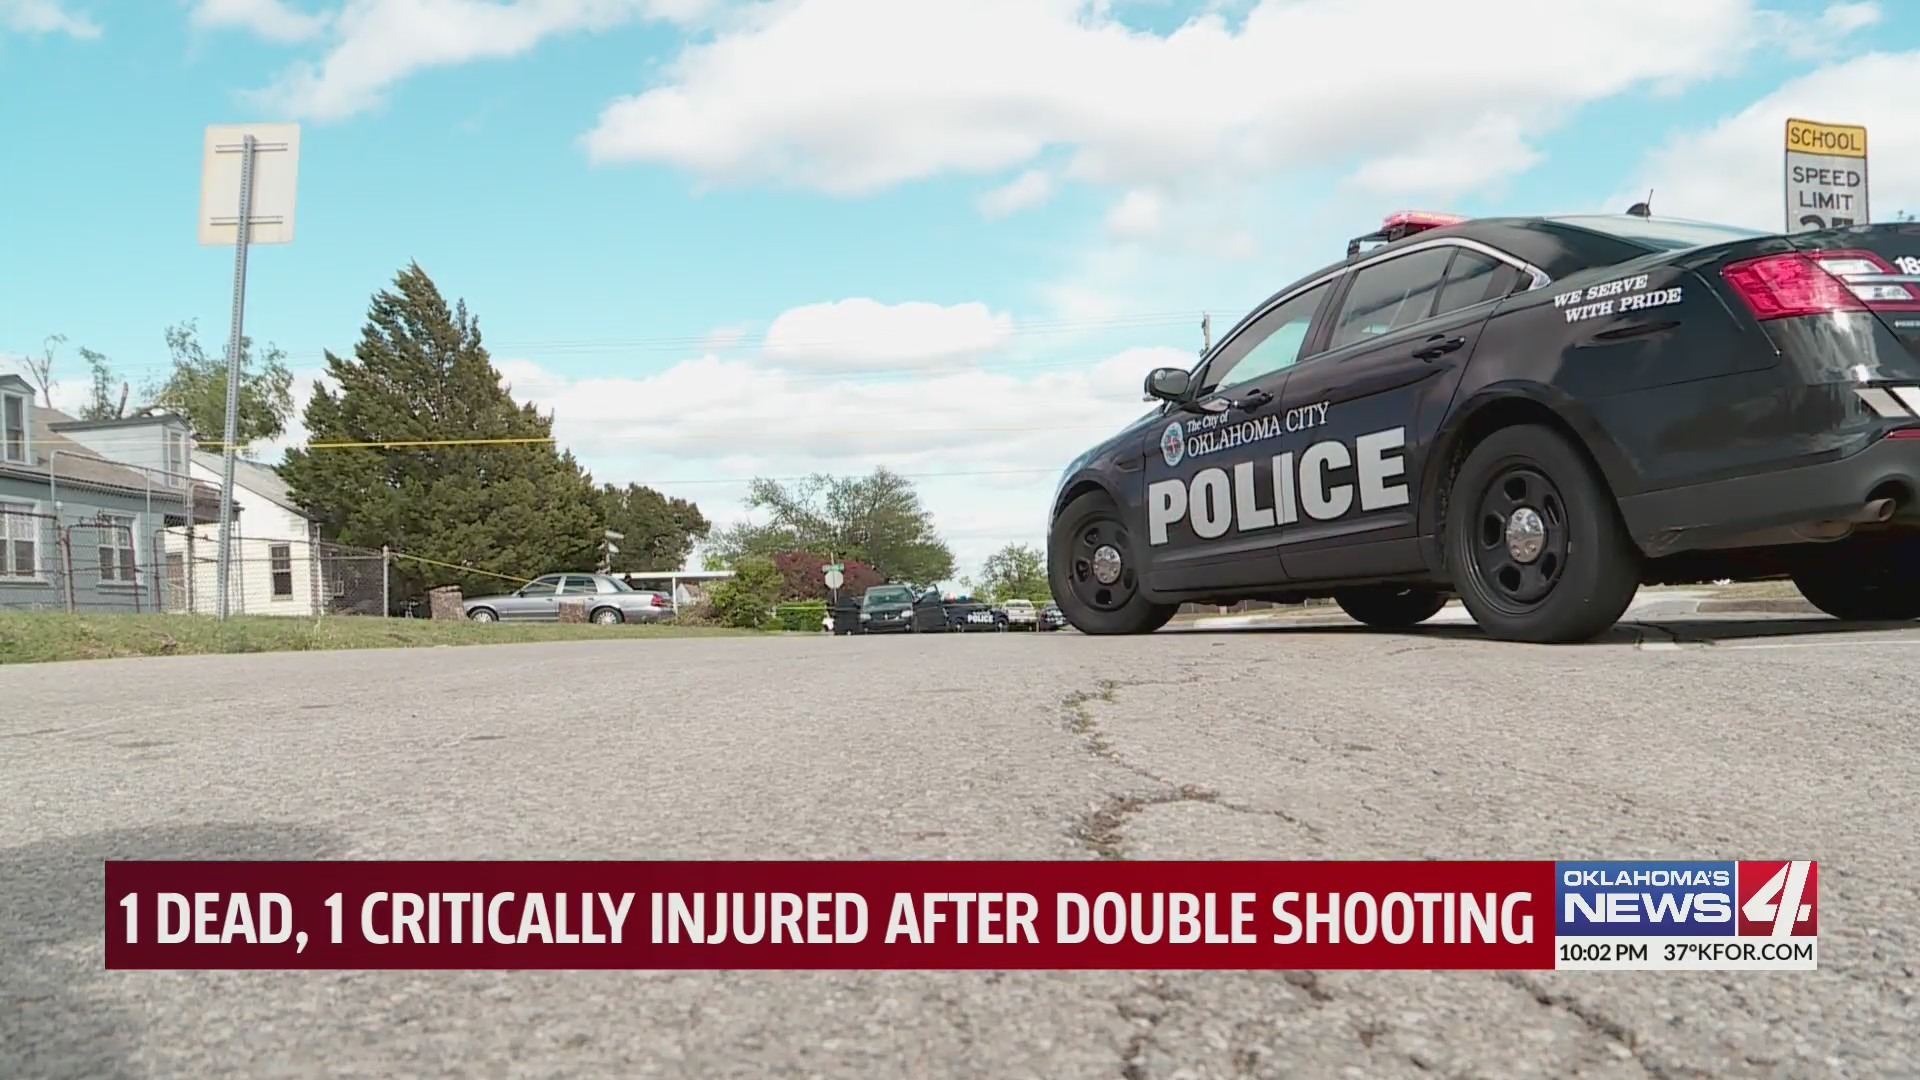 One person was killed and another critically injured in an Oklahoma City shooting.